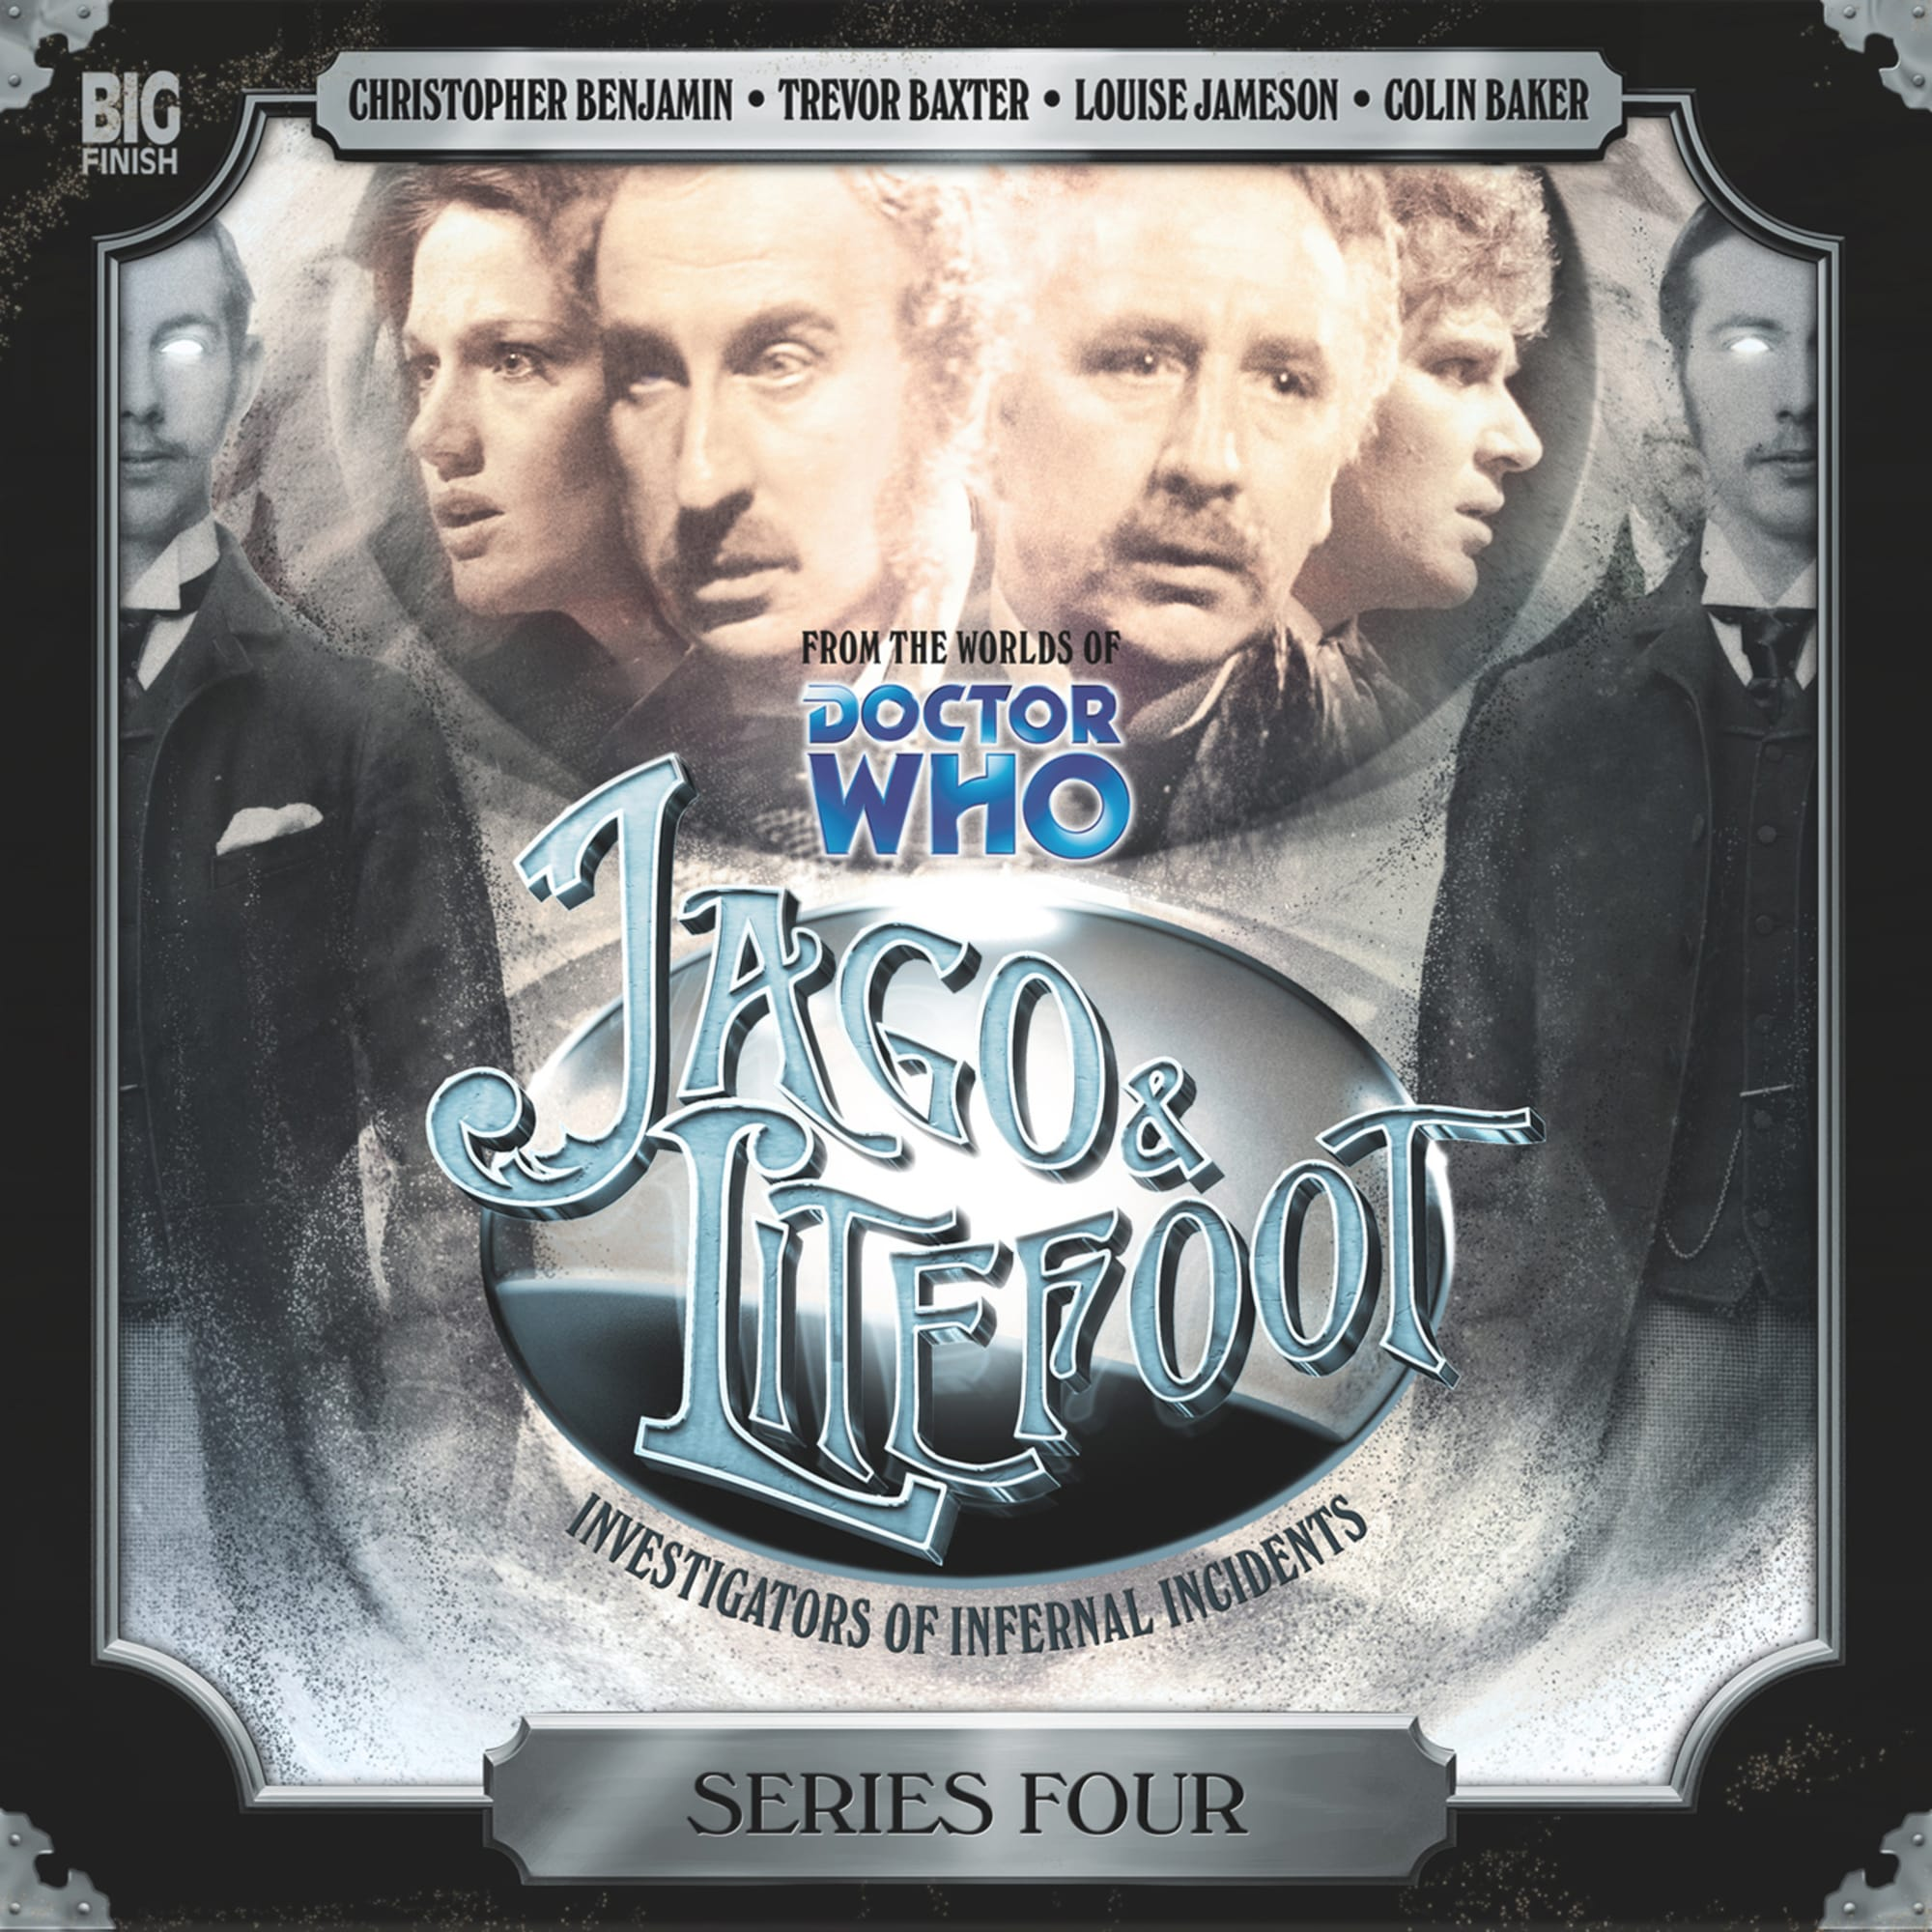 Doctor Who spin-off review: Jago & Litefoot: Series 4 teams the duo with a familiar face